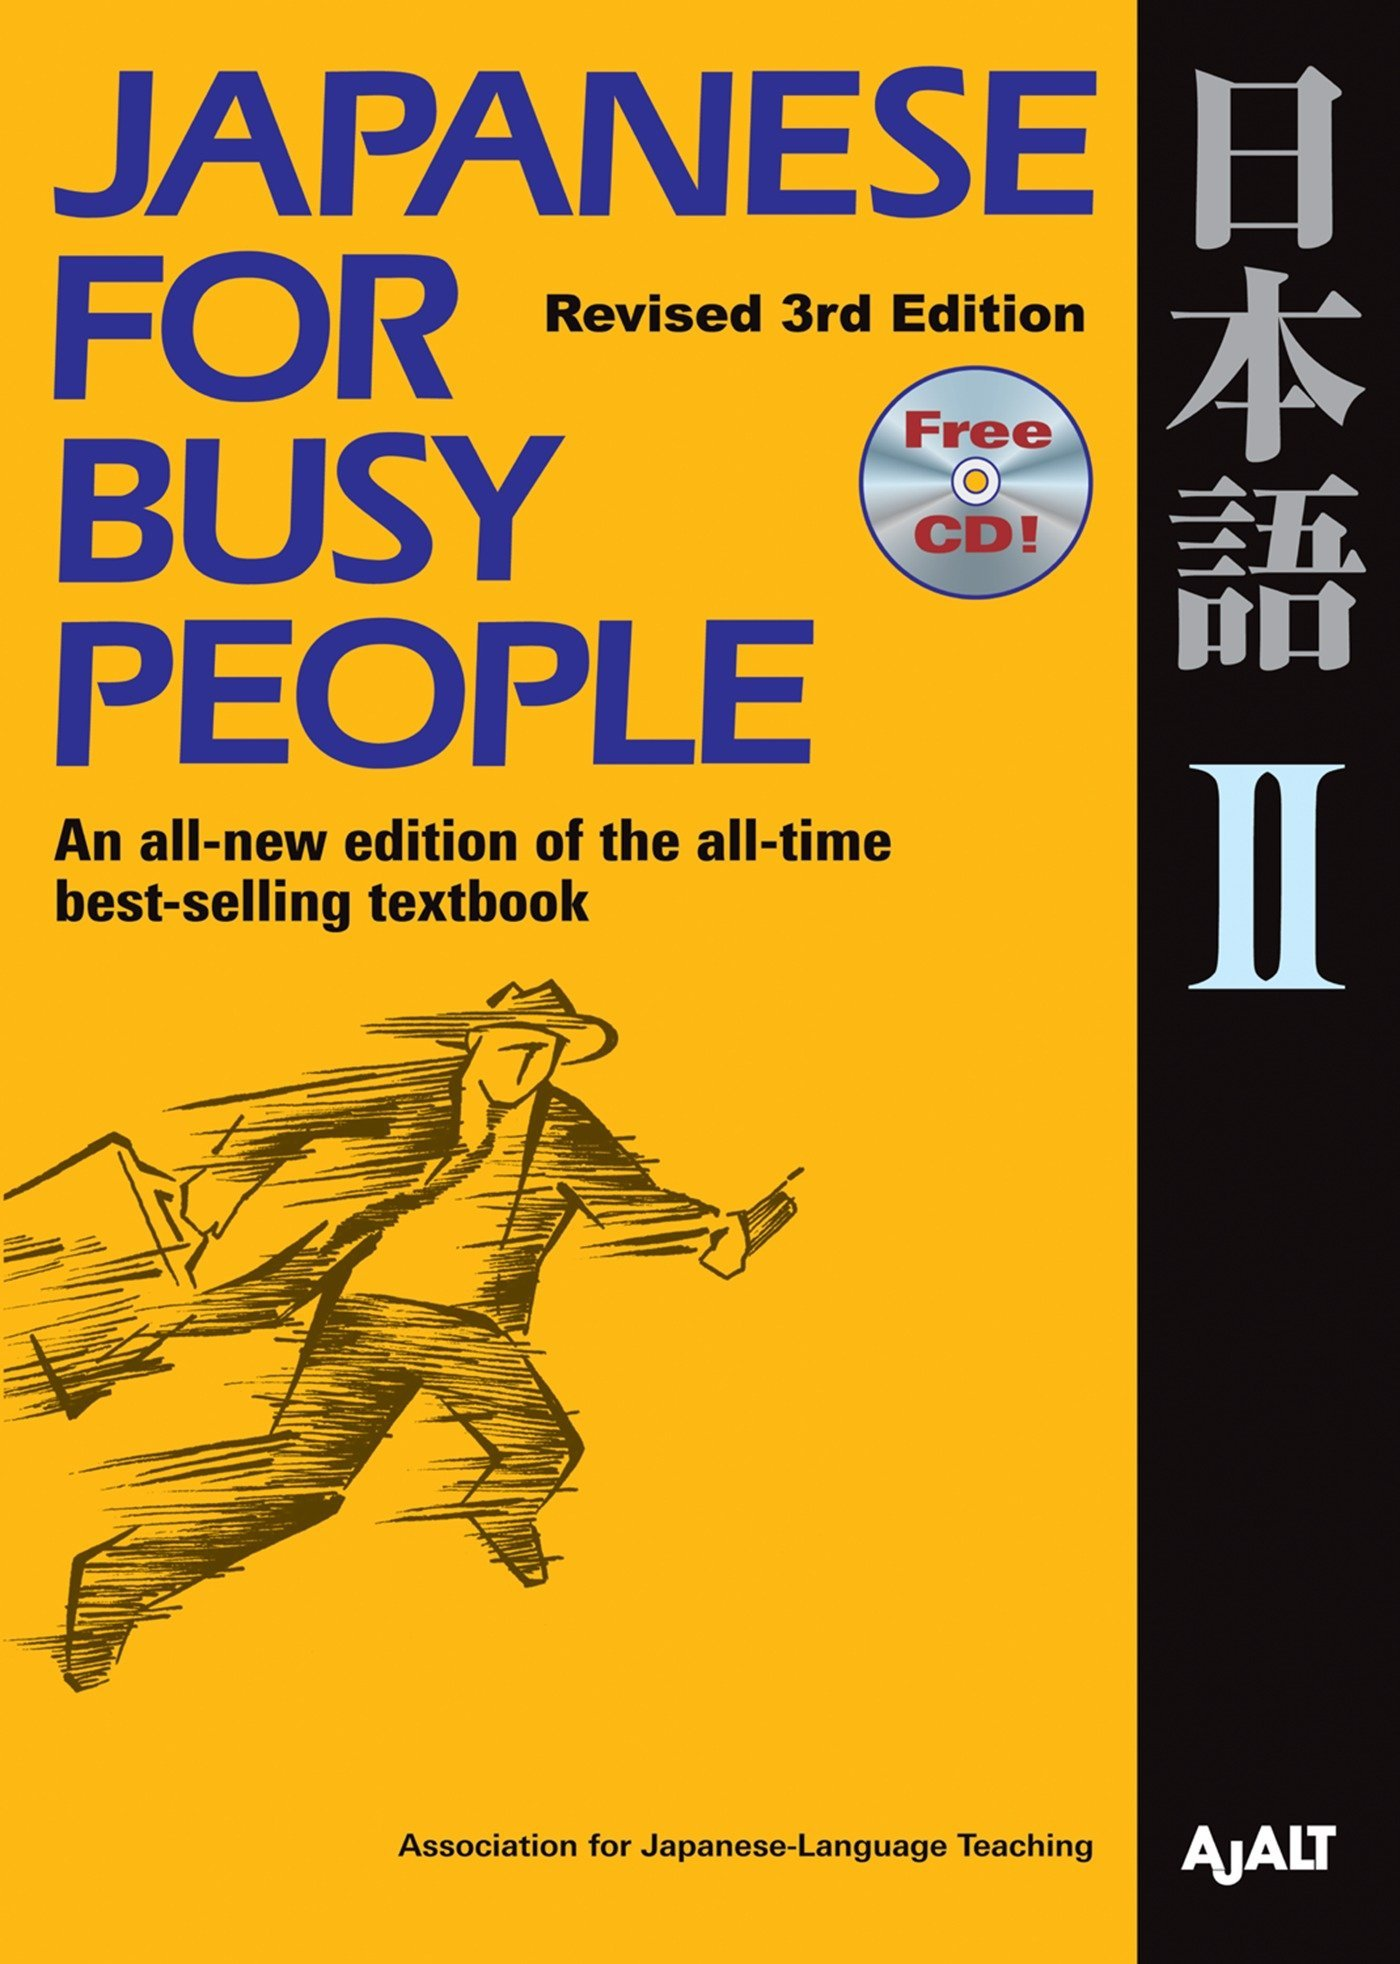 Japanese for Busy People 2: Amazon co uk: Ajalt